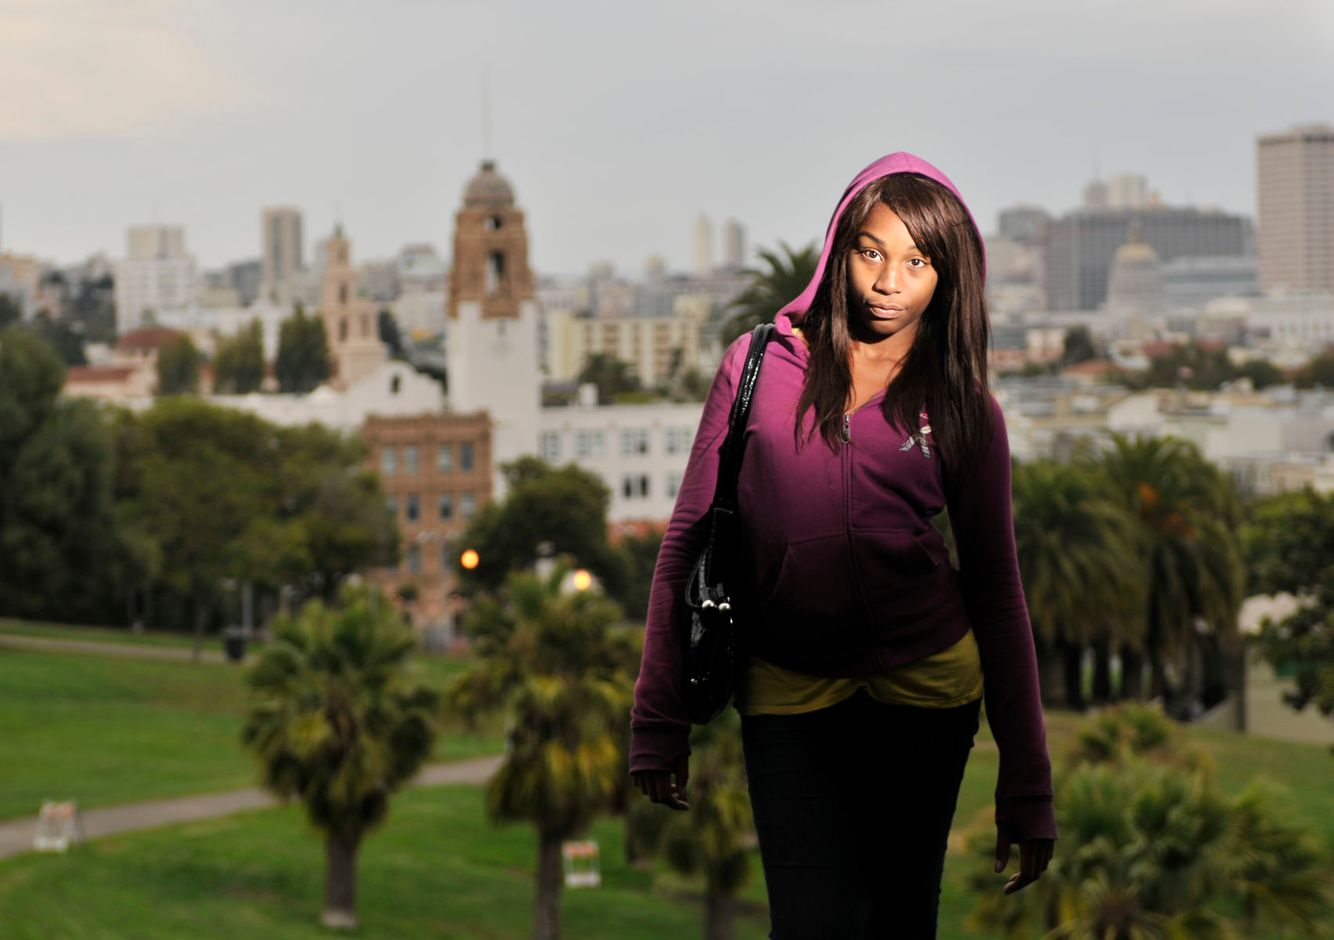 A transgender student victimized by bullying poses for a portrait near her San Francisco school.